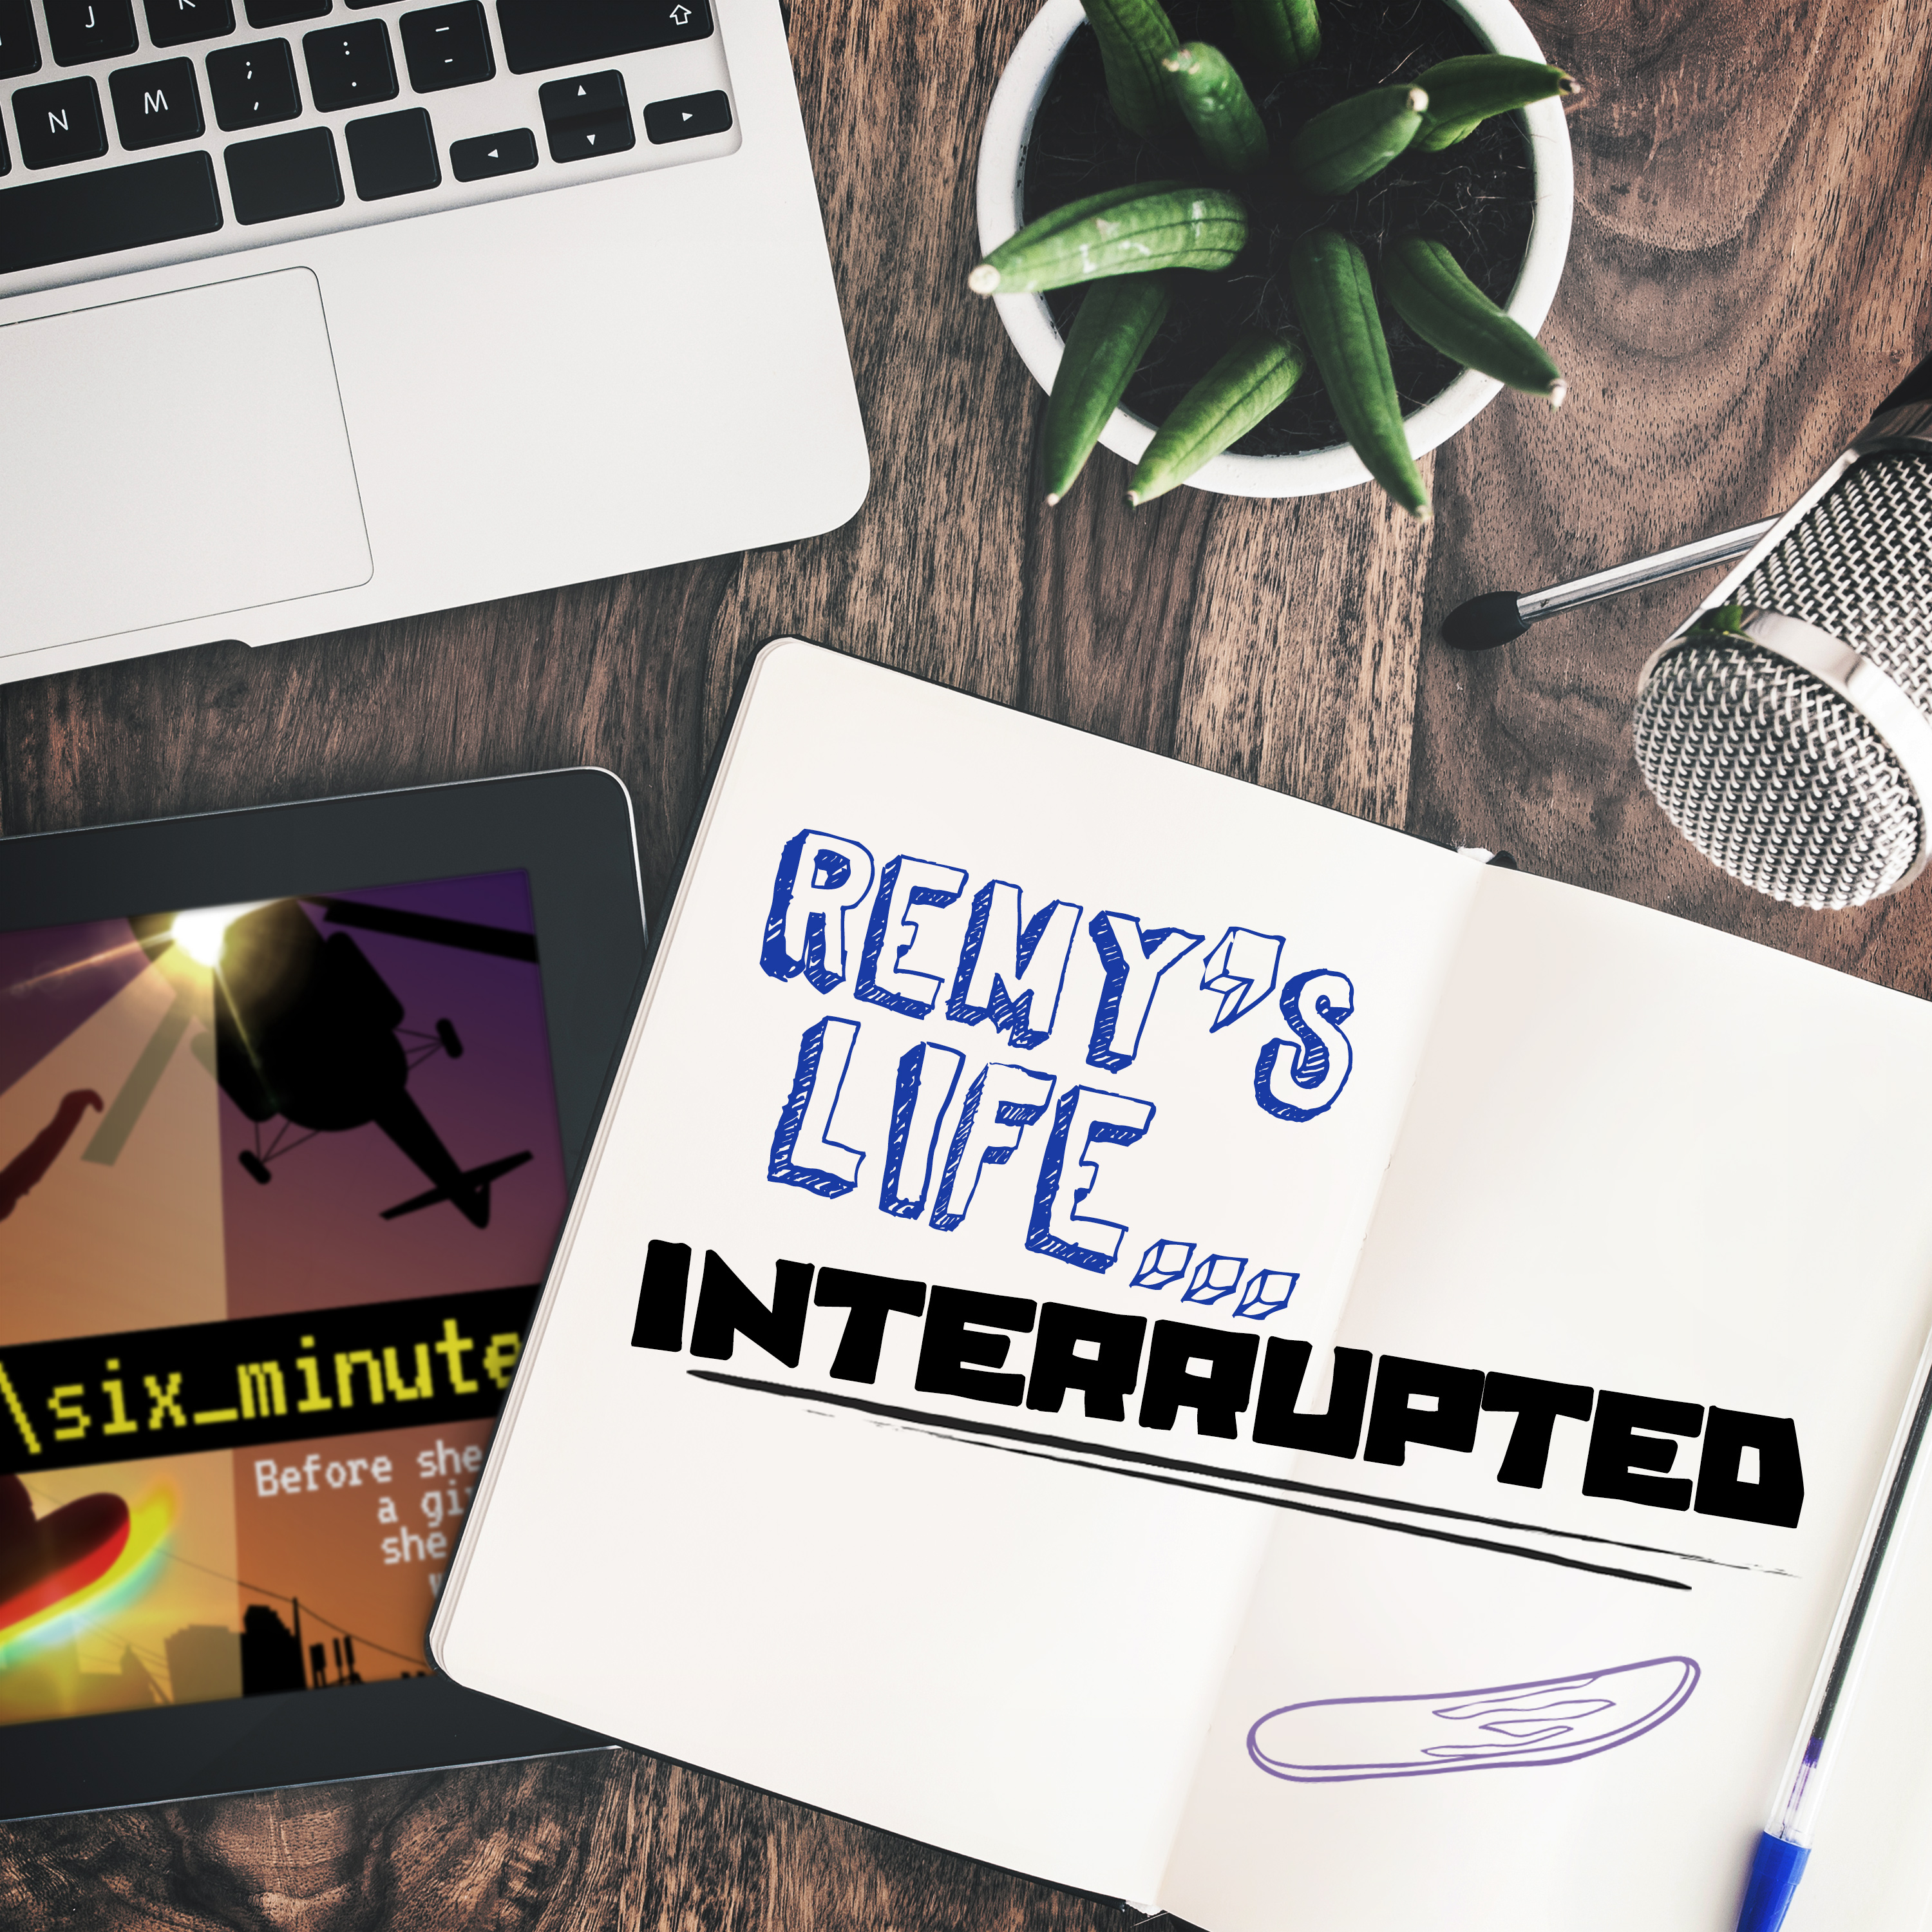 Remy's Life Interrupted: EP67